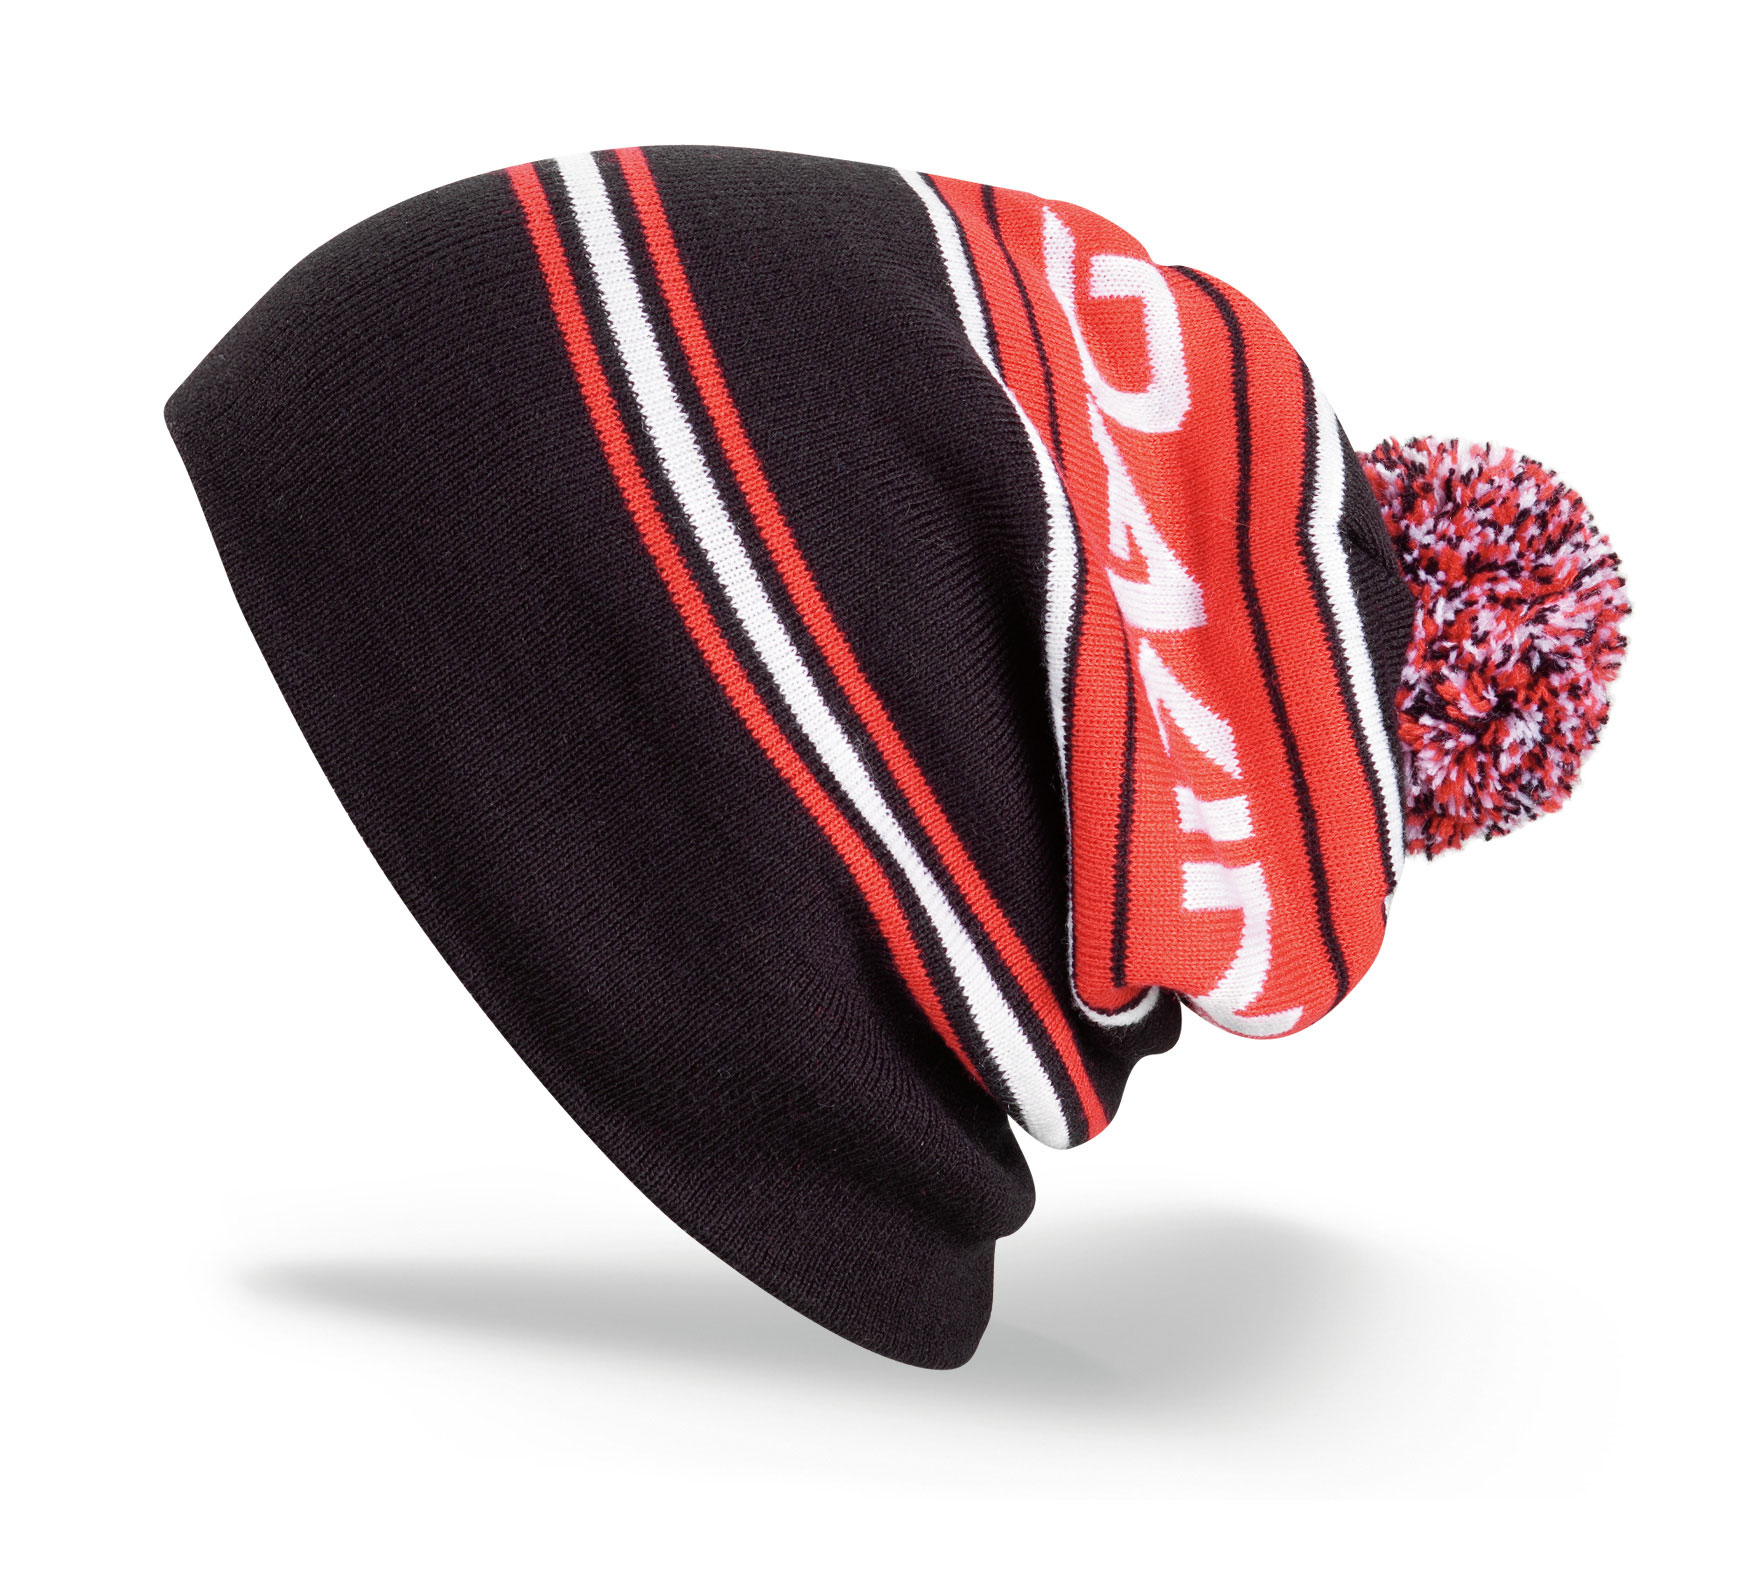 Snowboard Key Features of the Dakine Hank Beanie: Flat knit acrylic Double lined Can be worn cuffed or slouchy - $17.95